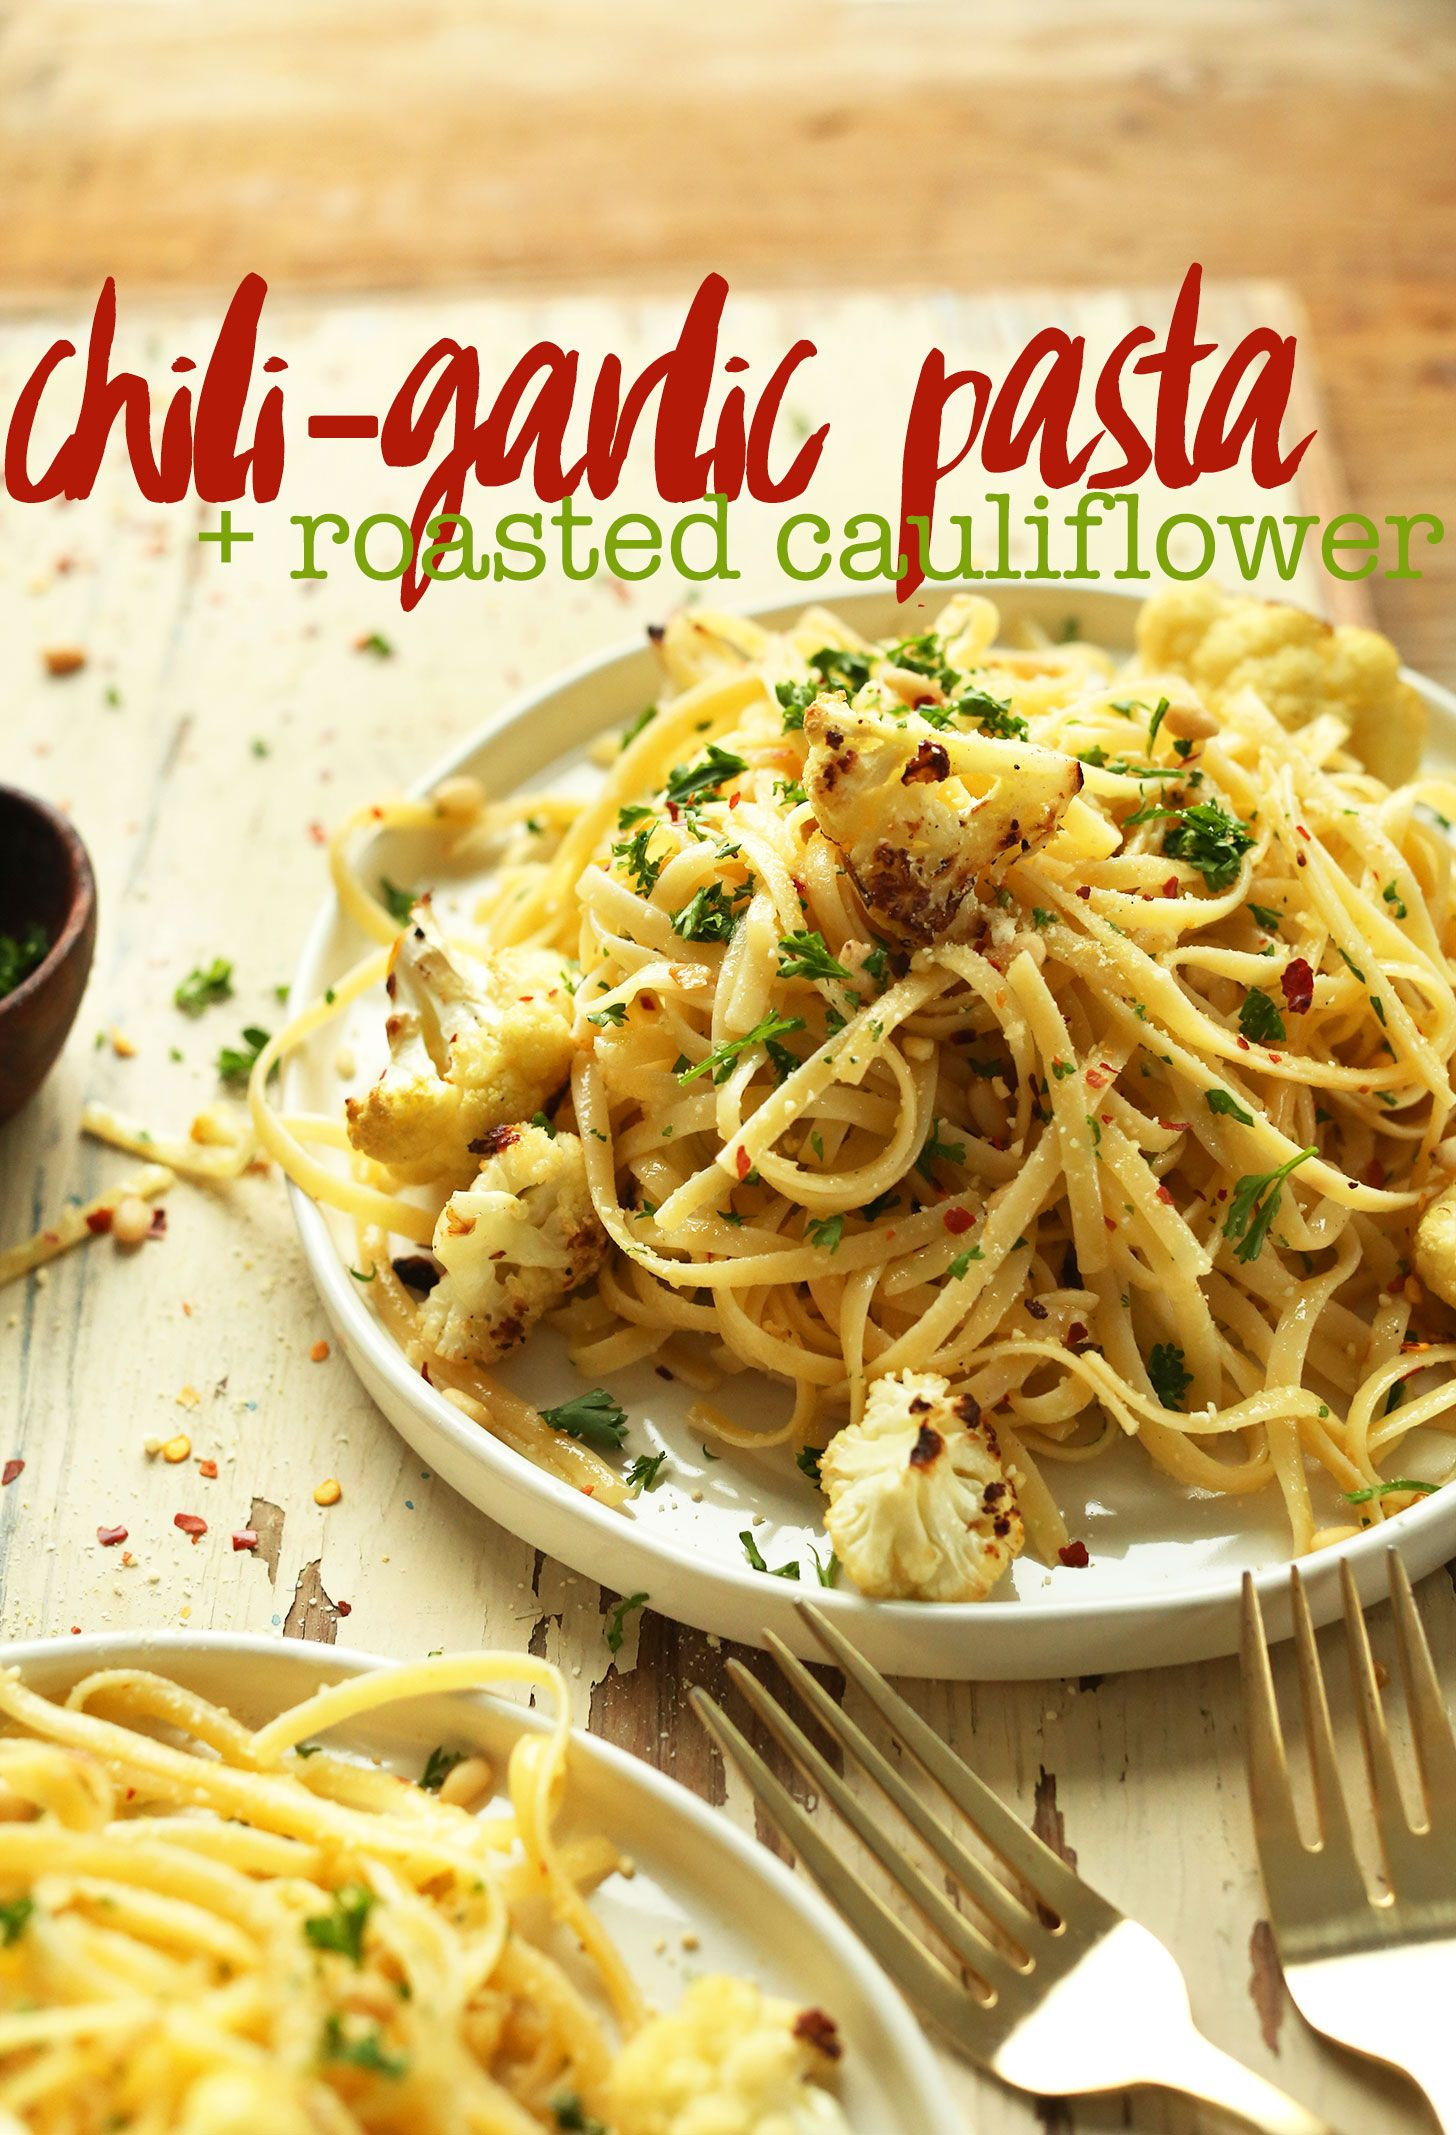 Garlic Chili Pasta With Roasted Cauliflower